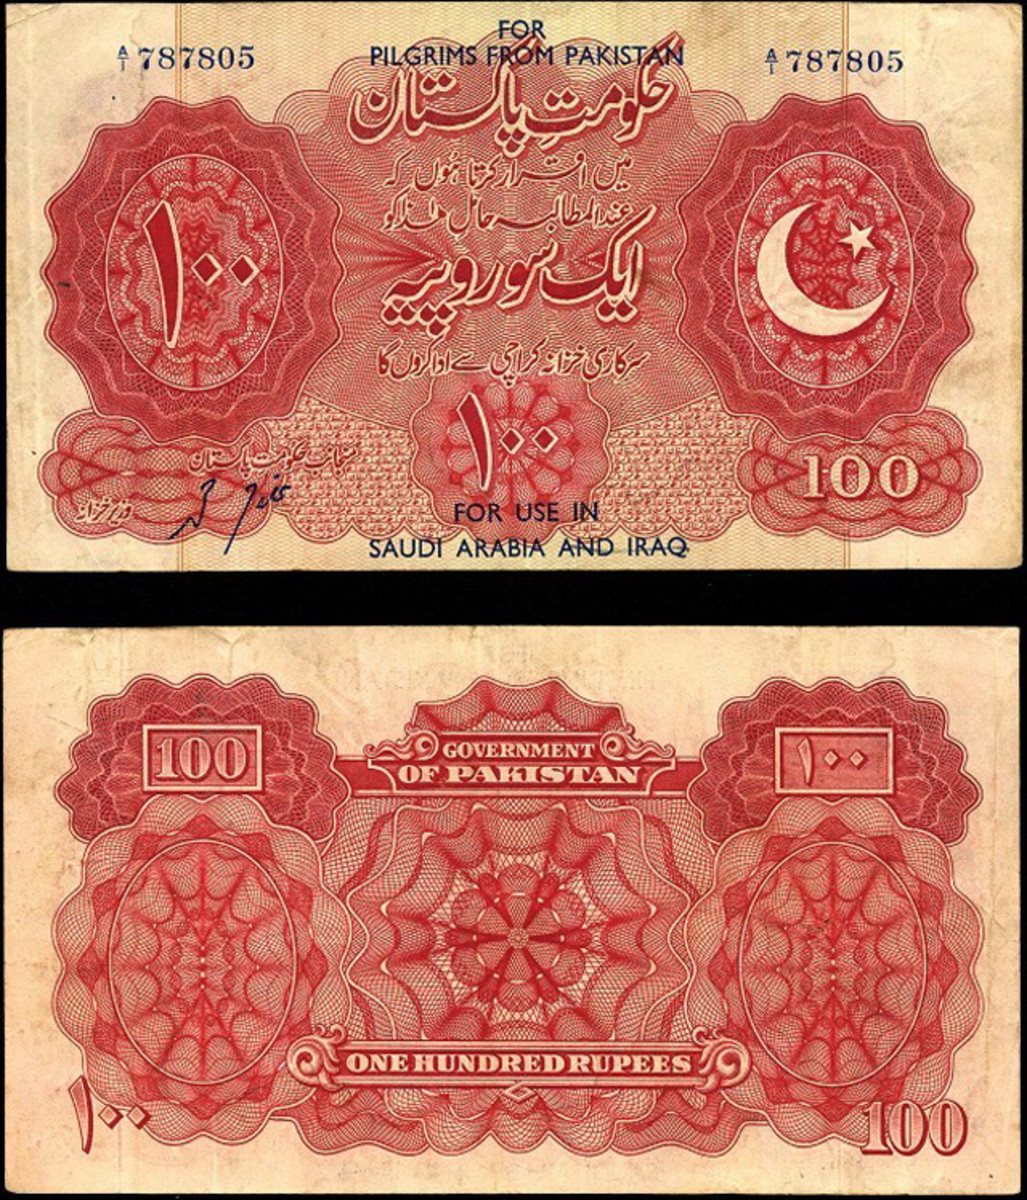 The top world lot was a Pakistan 100 rupees.